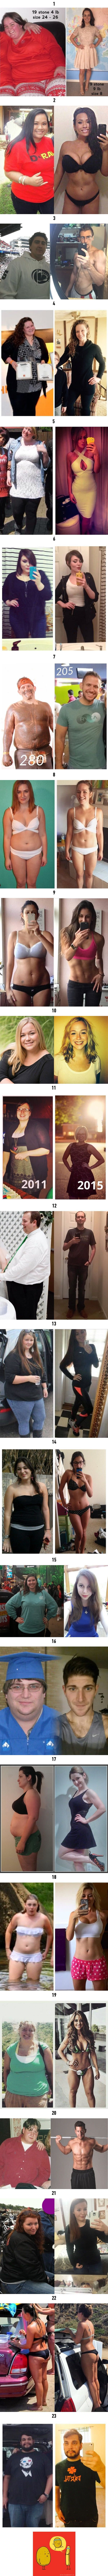 23 Dramatic Weight-Loss Photos Show That Willpower Is Everything